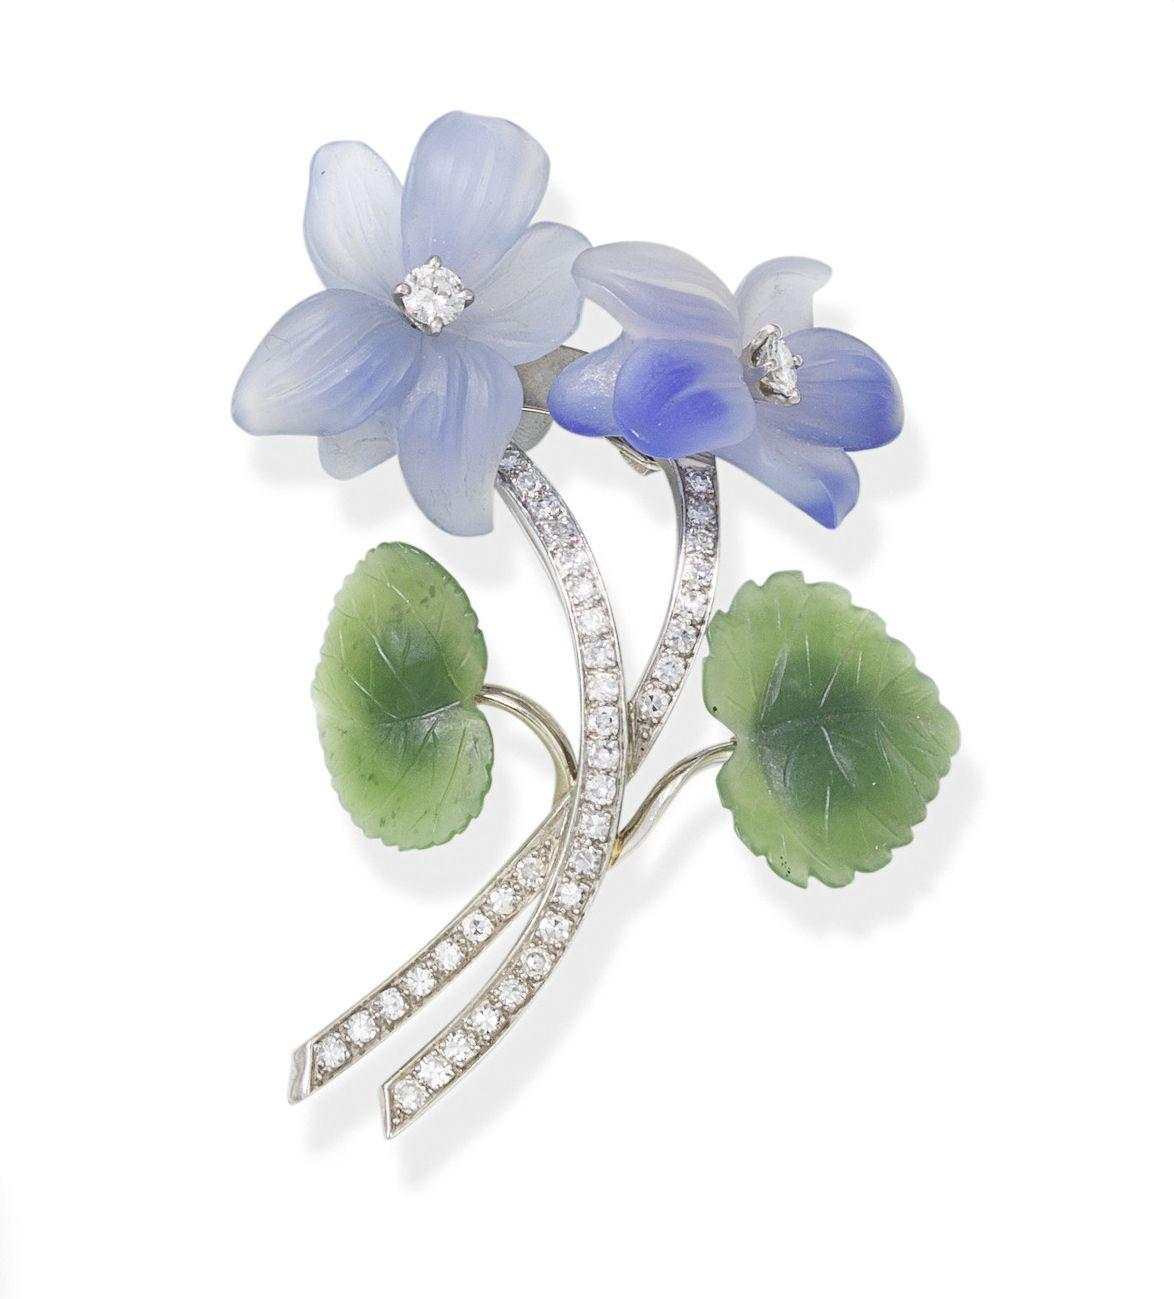 ef09485e81afd Agate Flower Brooches Price Guide > Antique Brooches